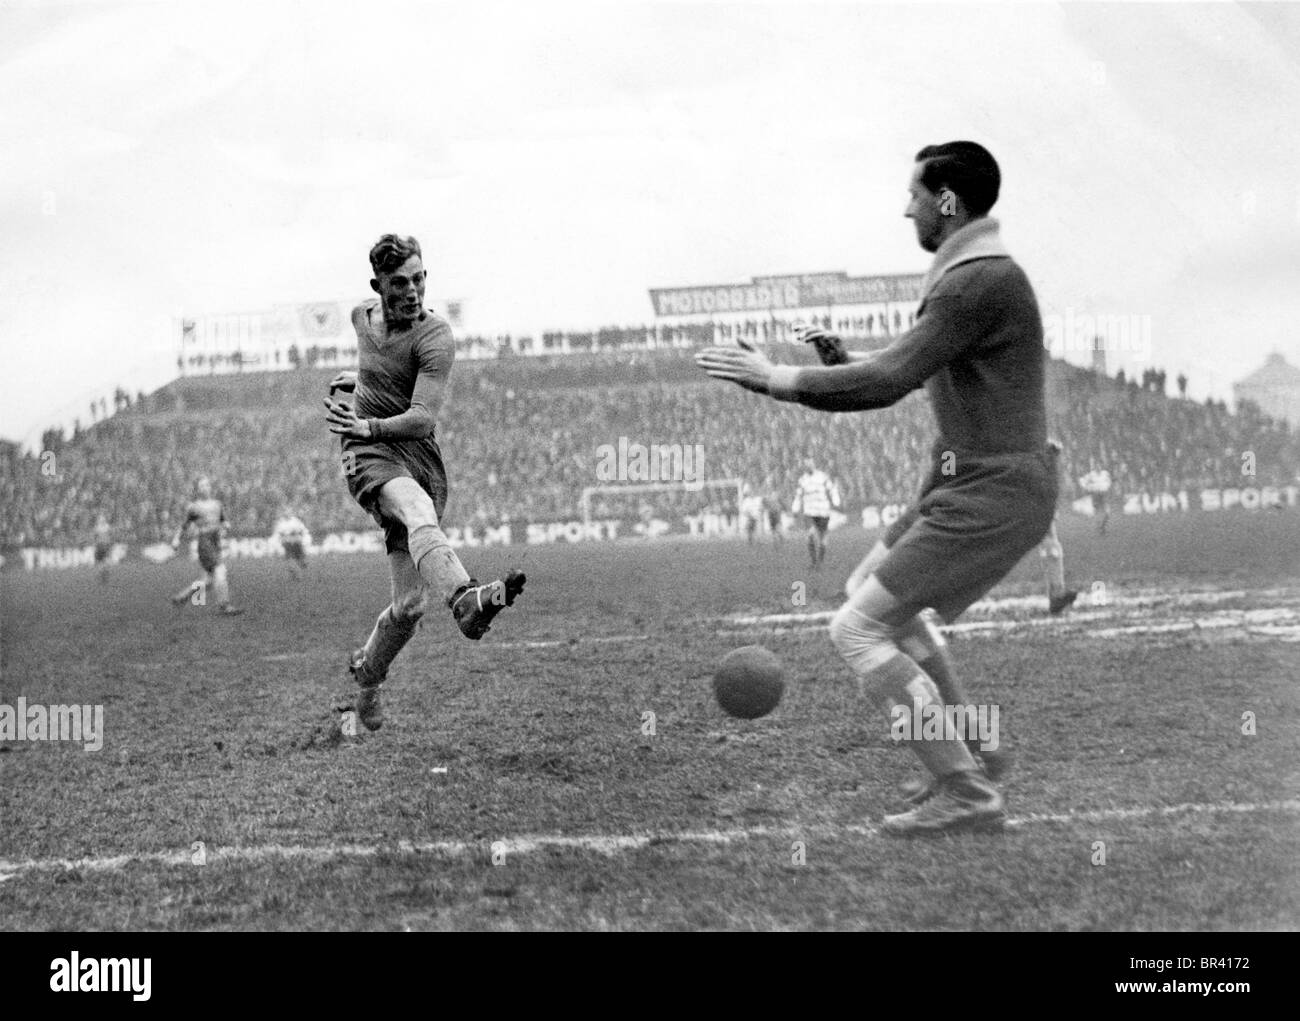 Historical image, football, ca. 1925 - Stock Image